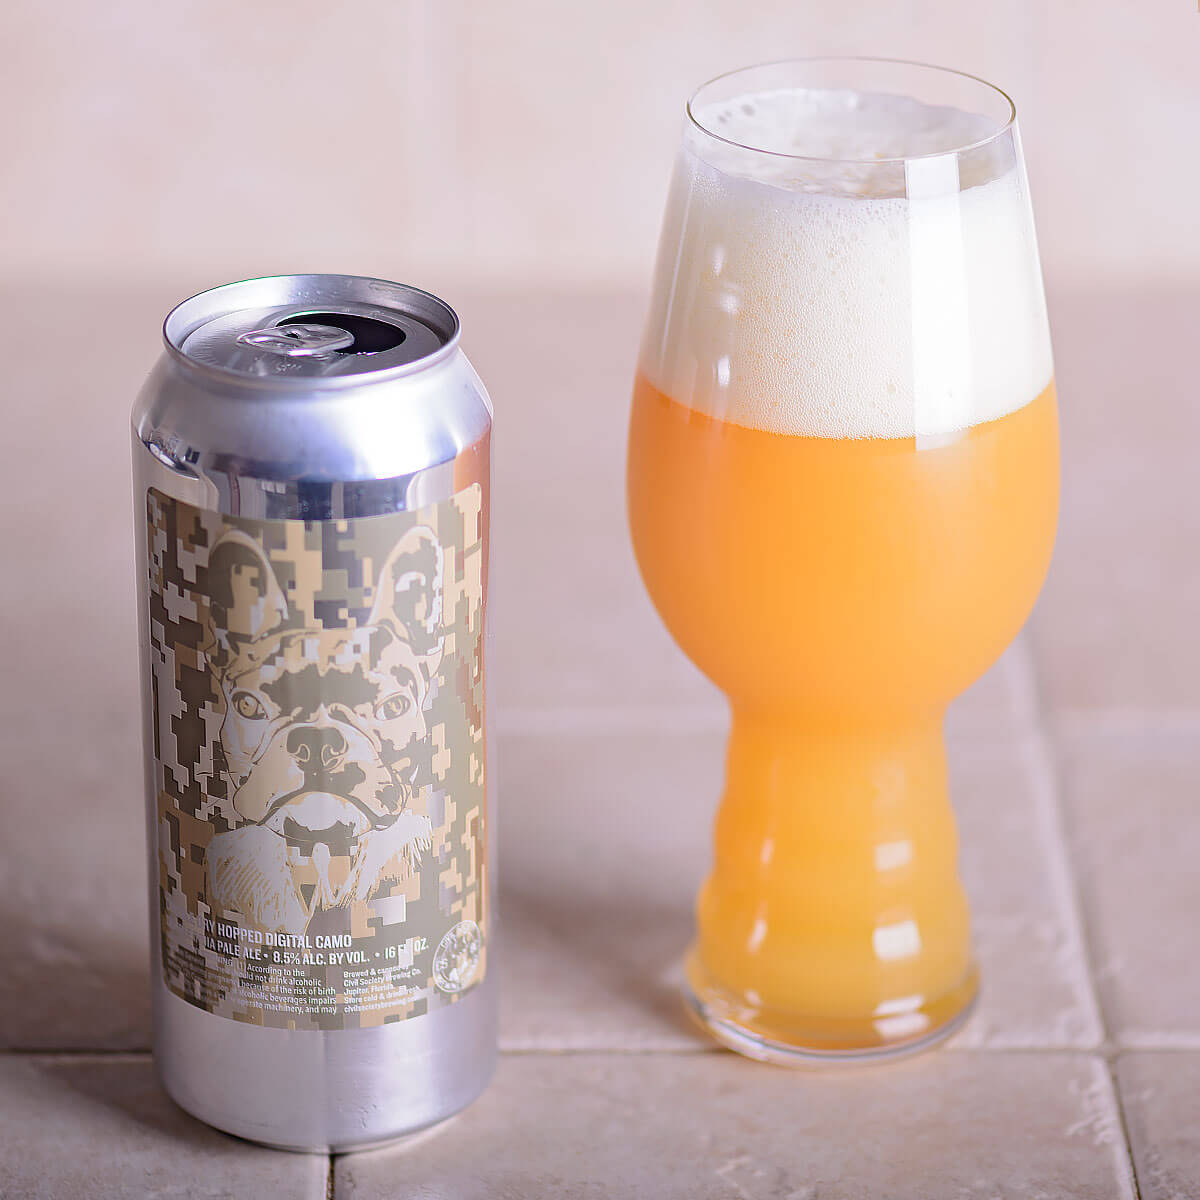 DDH Digital Camo, an American Double IPA by Civil Society Brewing Co.